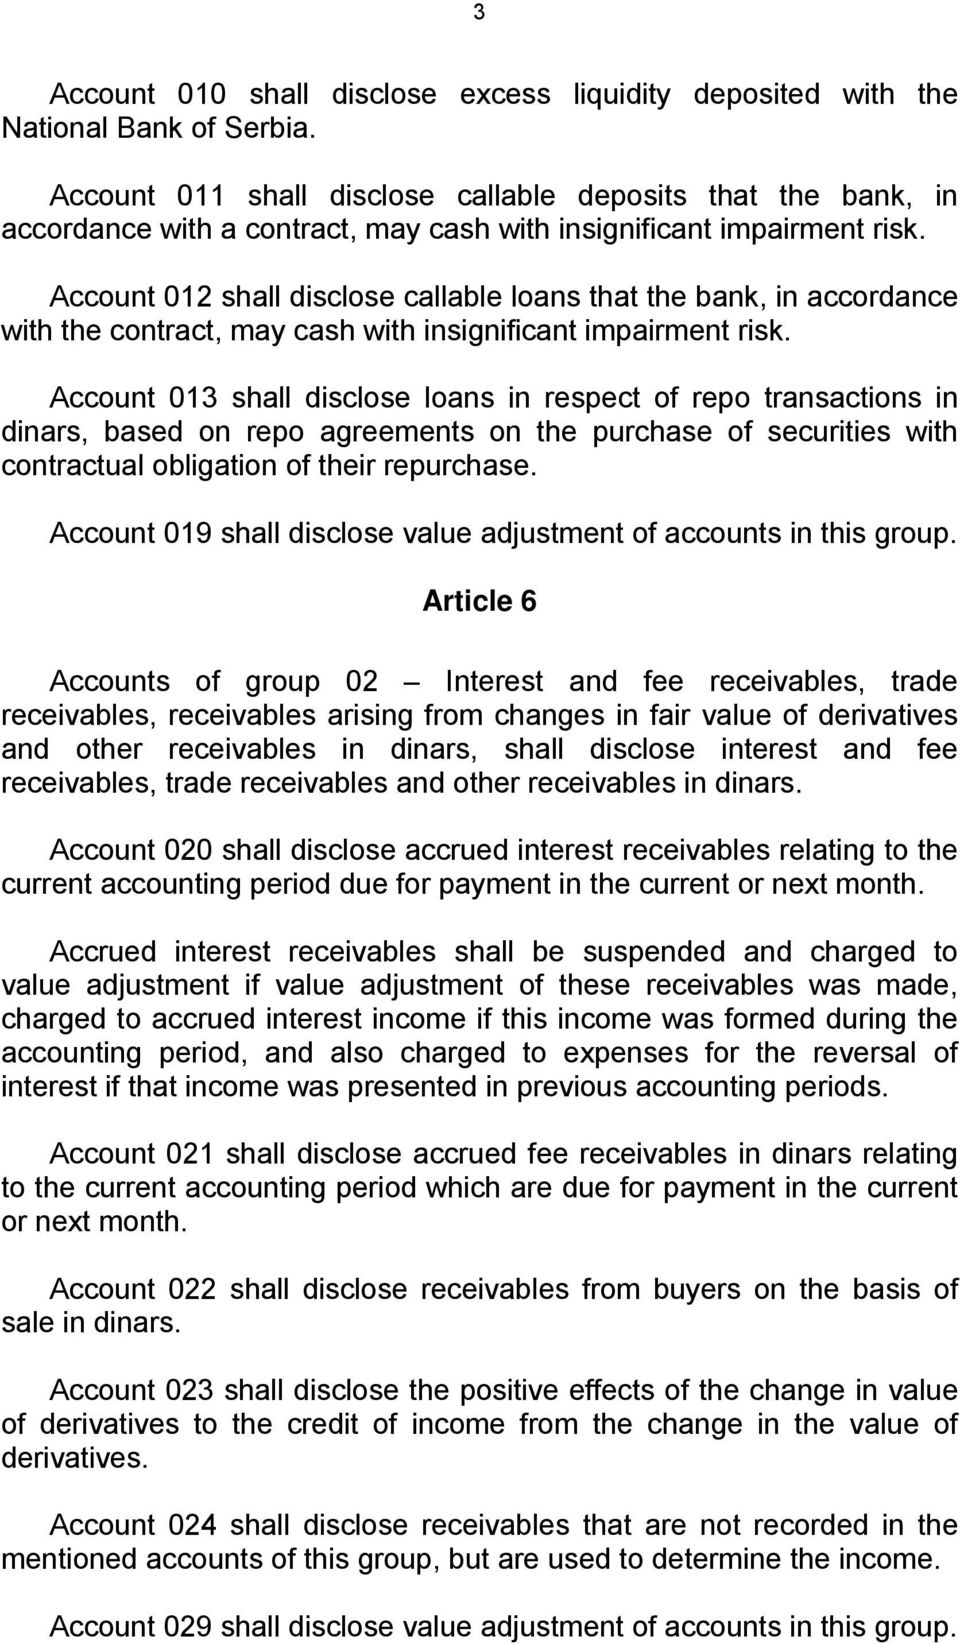 Account 012 shall disclose callable loans that the bank, in accordance with the contract, may cash with insignificant impairment risk.